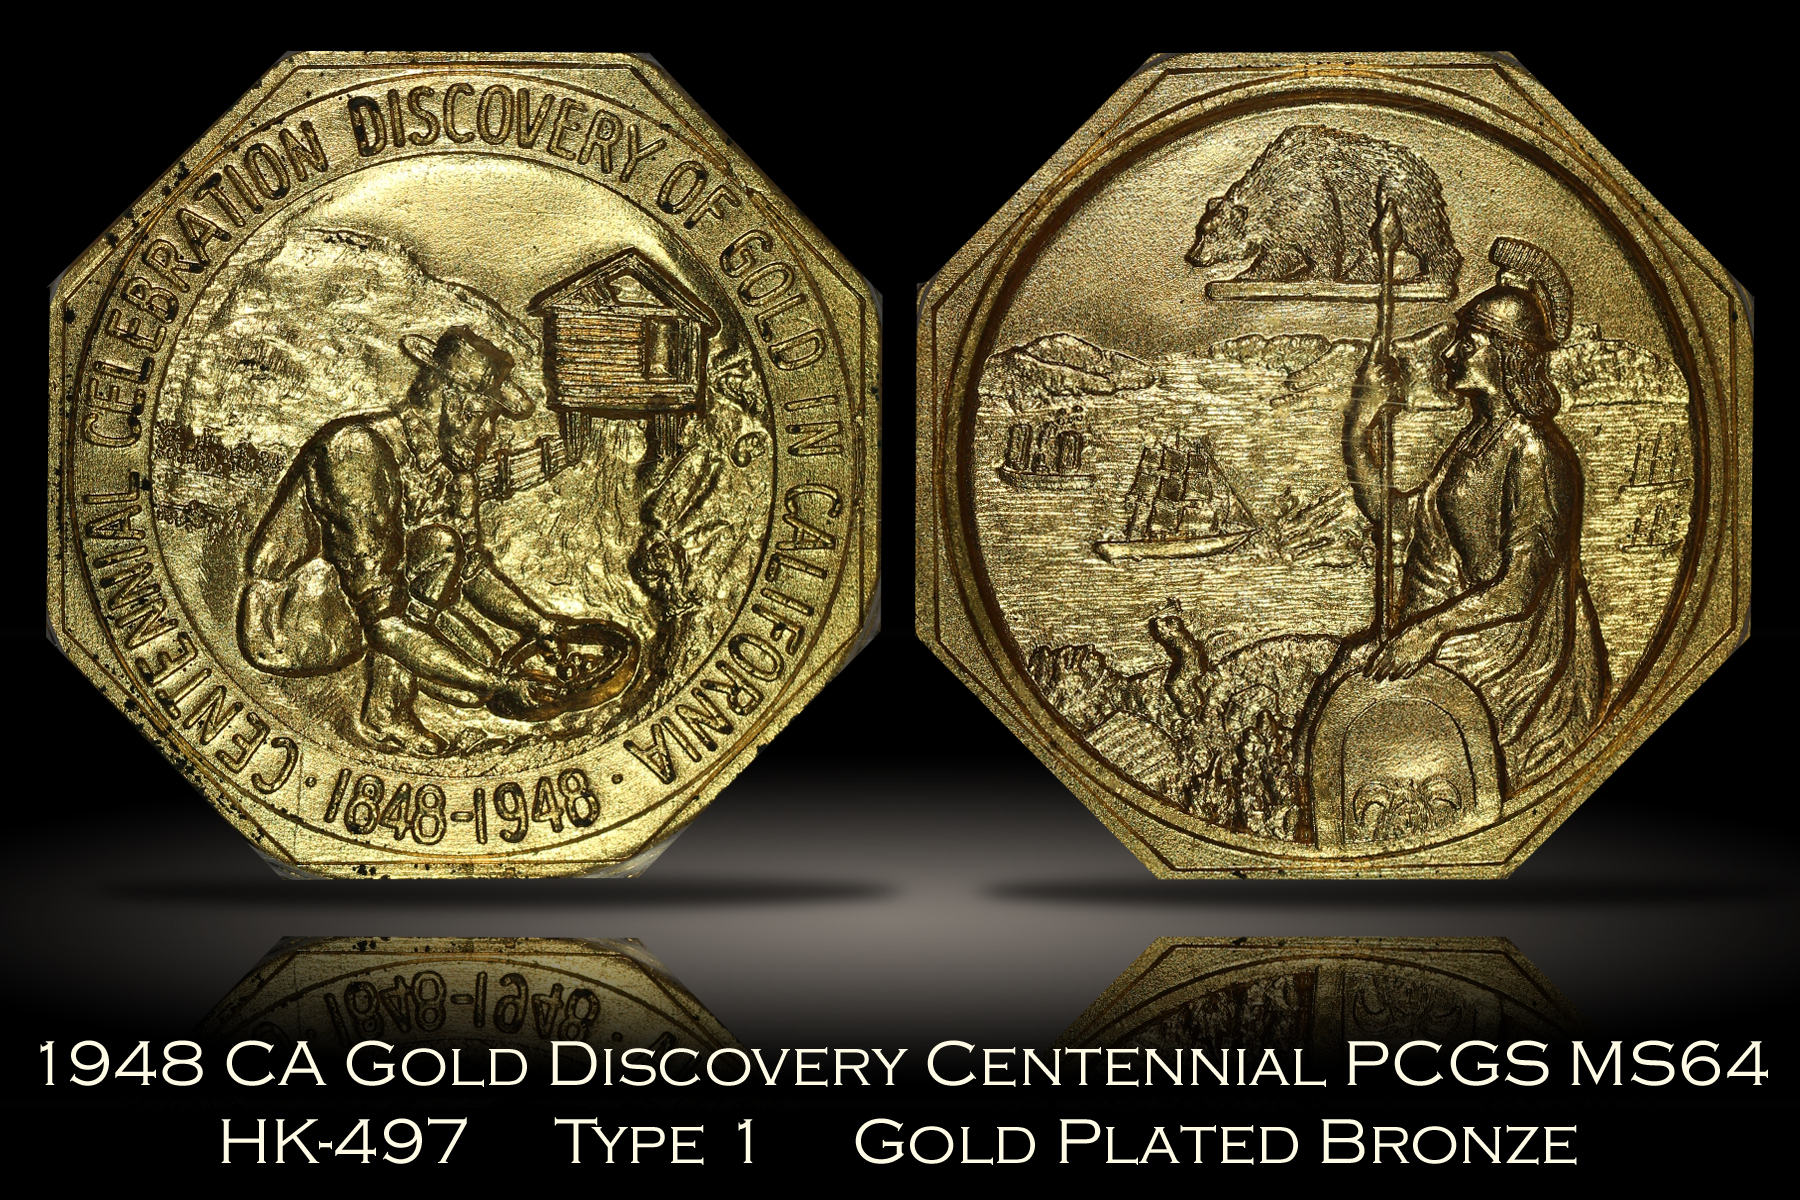 1948 California Gold Discovery Centennial HK-497 Gold Plated PCGS MS64